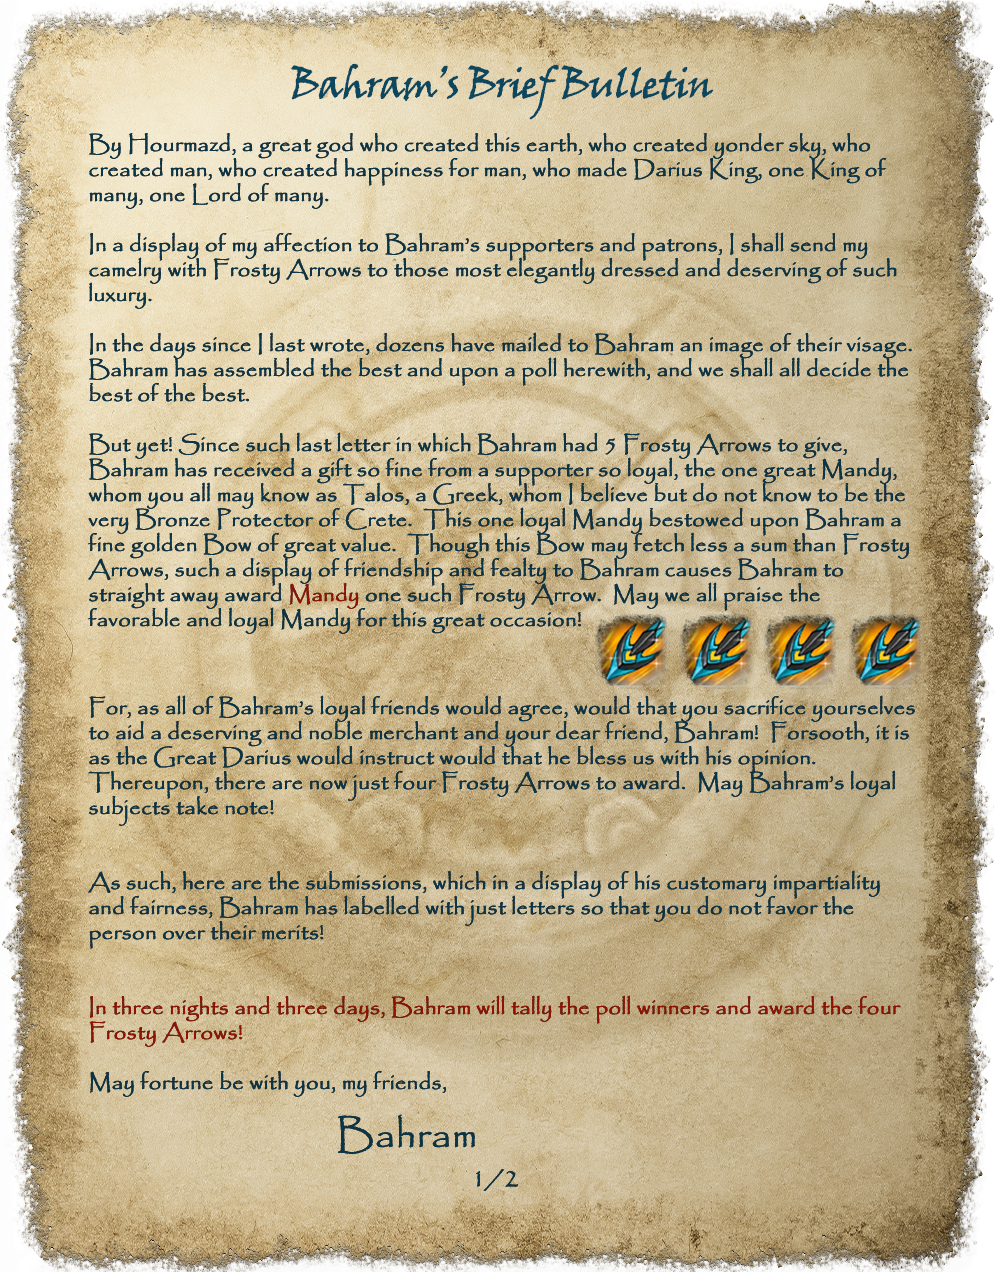 BahramsBriefBulletin-Page1.png